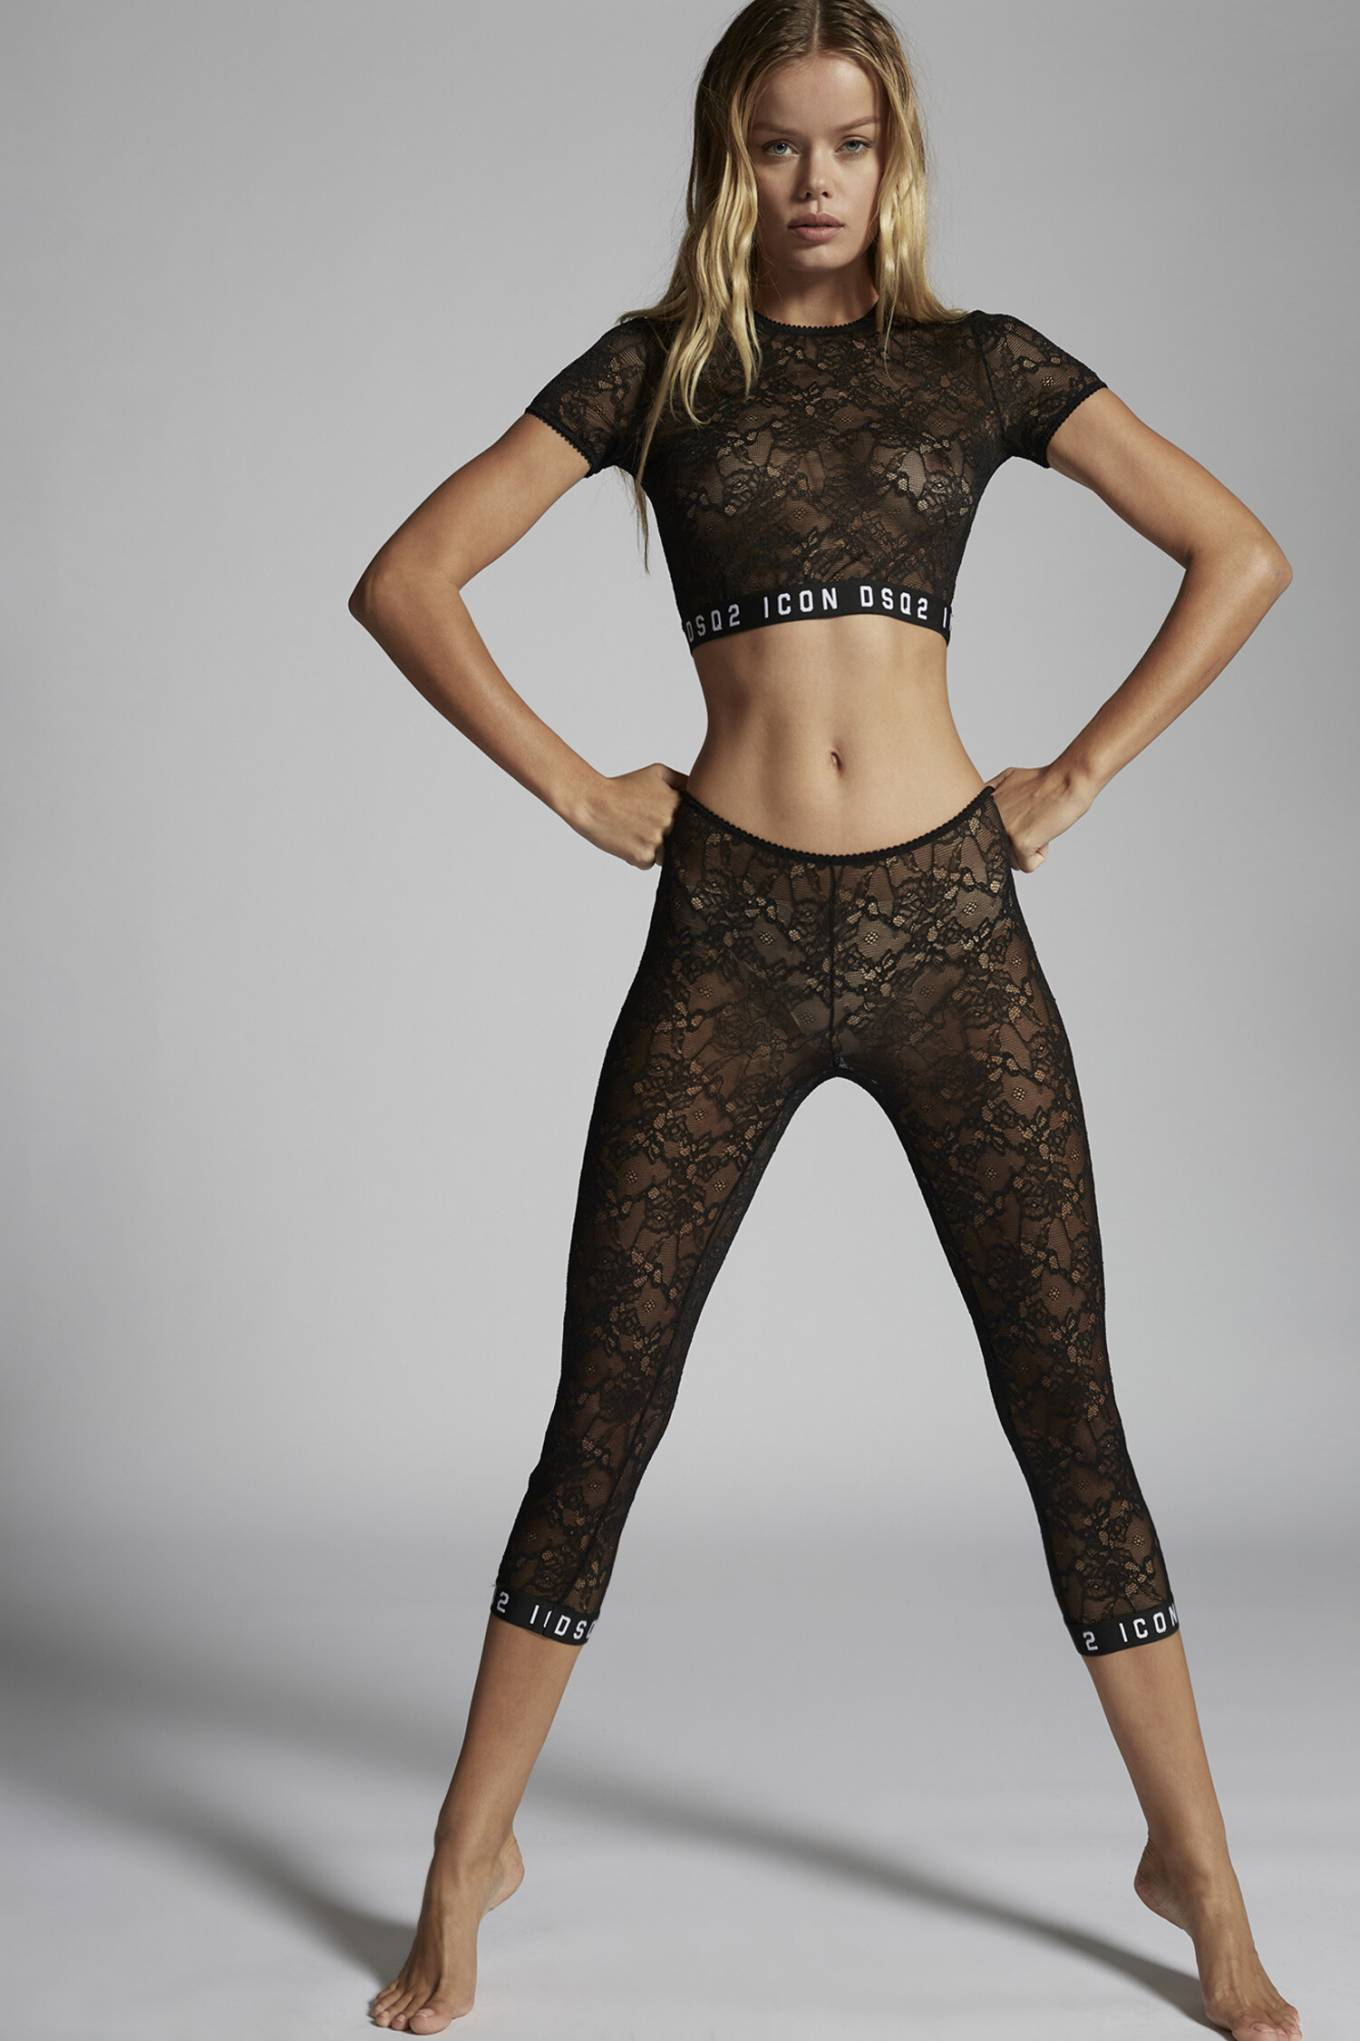 Frida Aasen rocking a see-through black crop top with a lace fabric, half sleeves, embroidered and a round neck